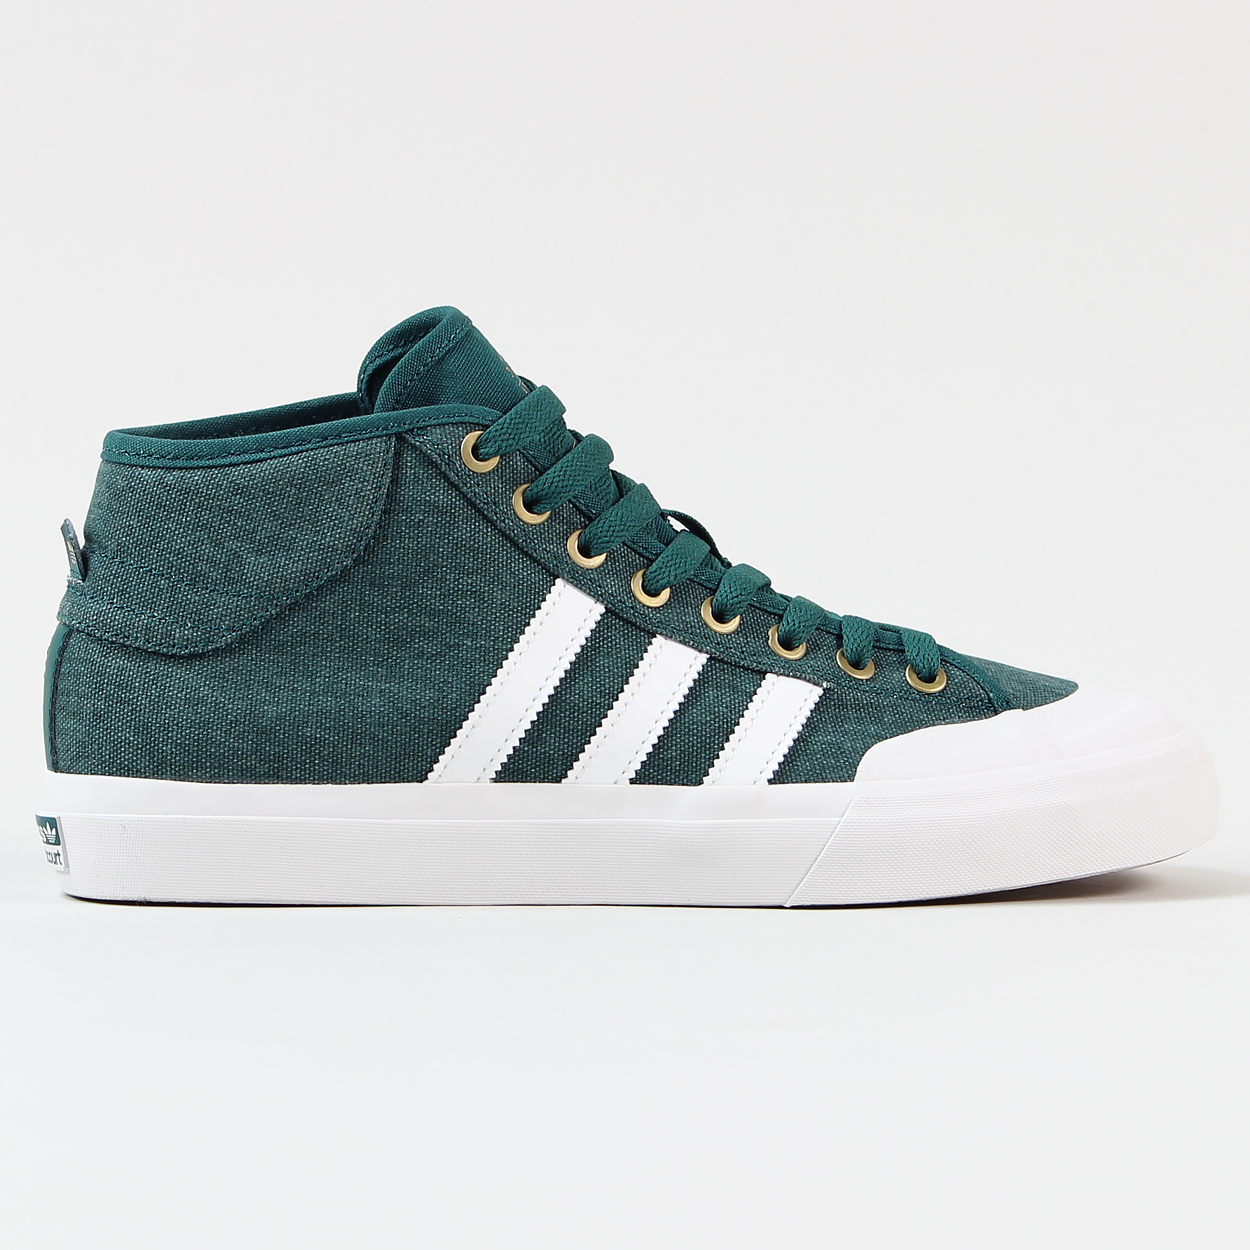 hot sale online 73d0c be364 Adidas Skateboarding Mens Matchcourt Mid ADV Shoes Green Whi